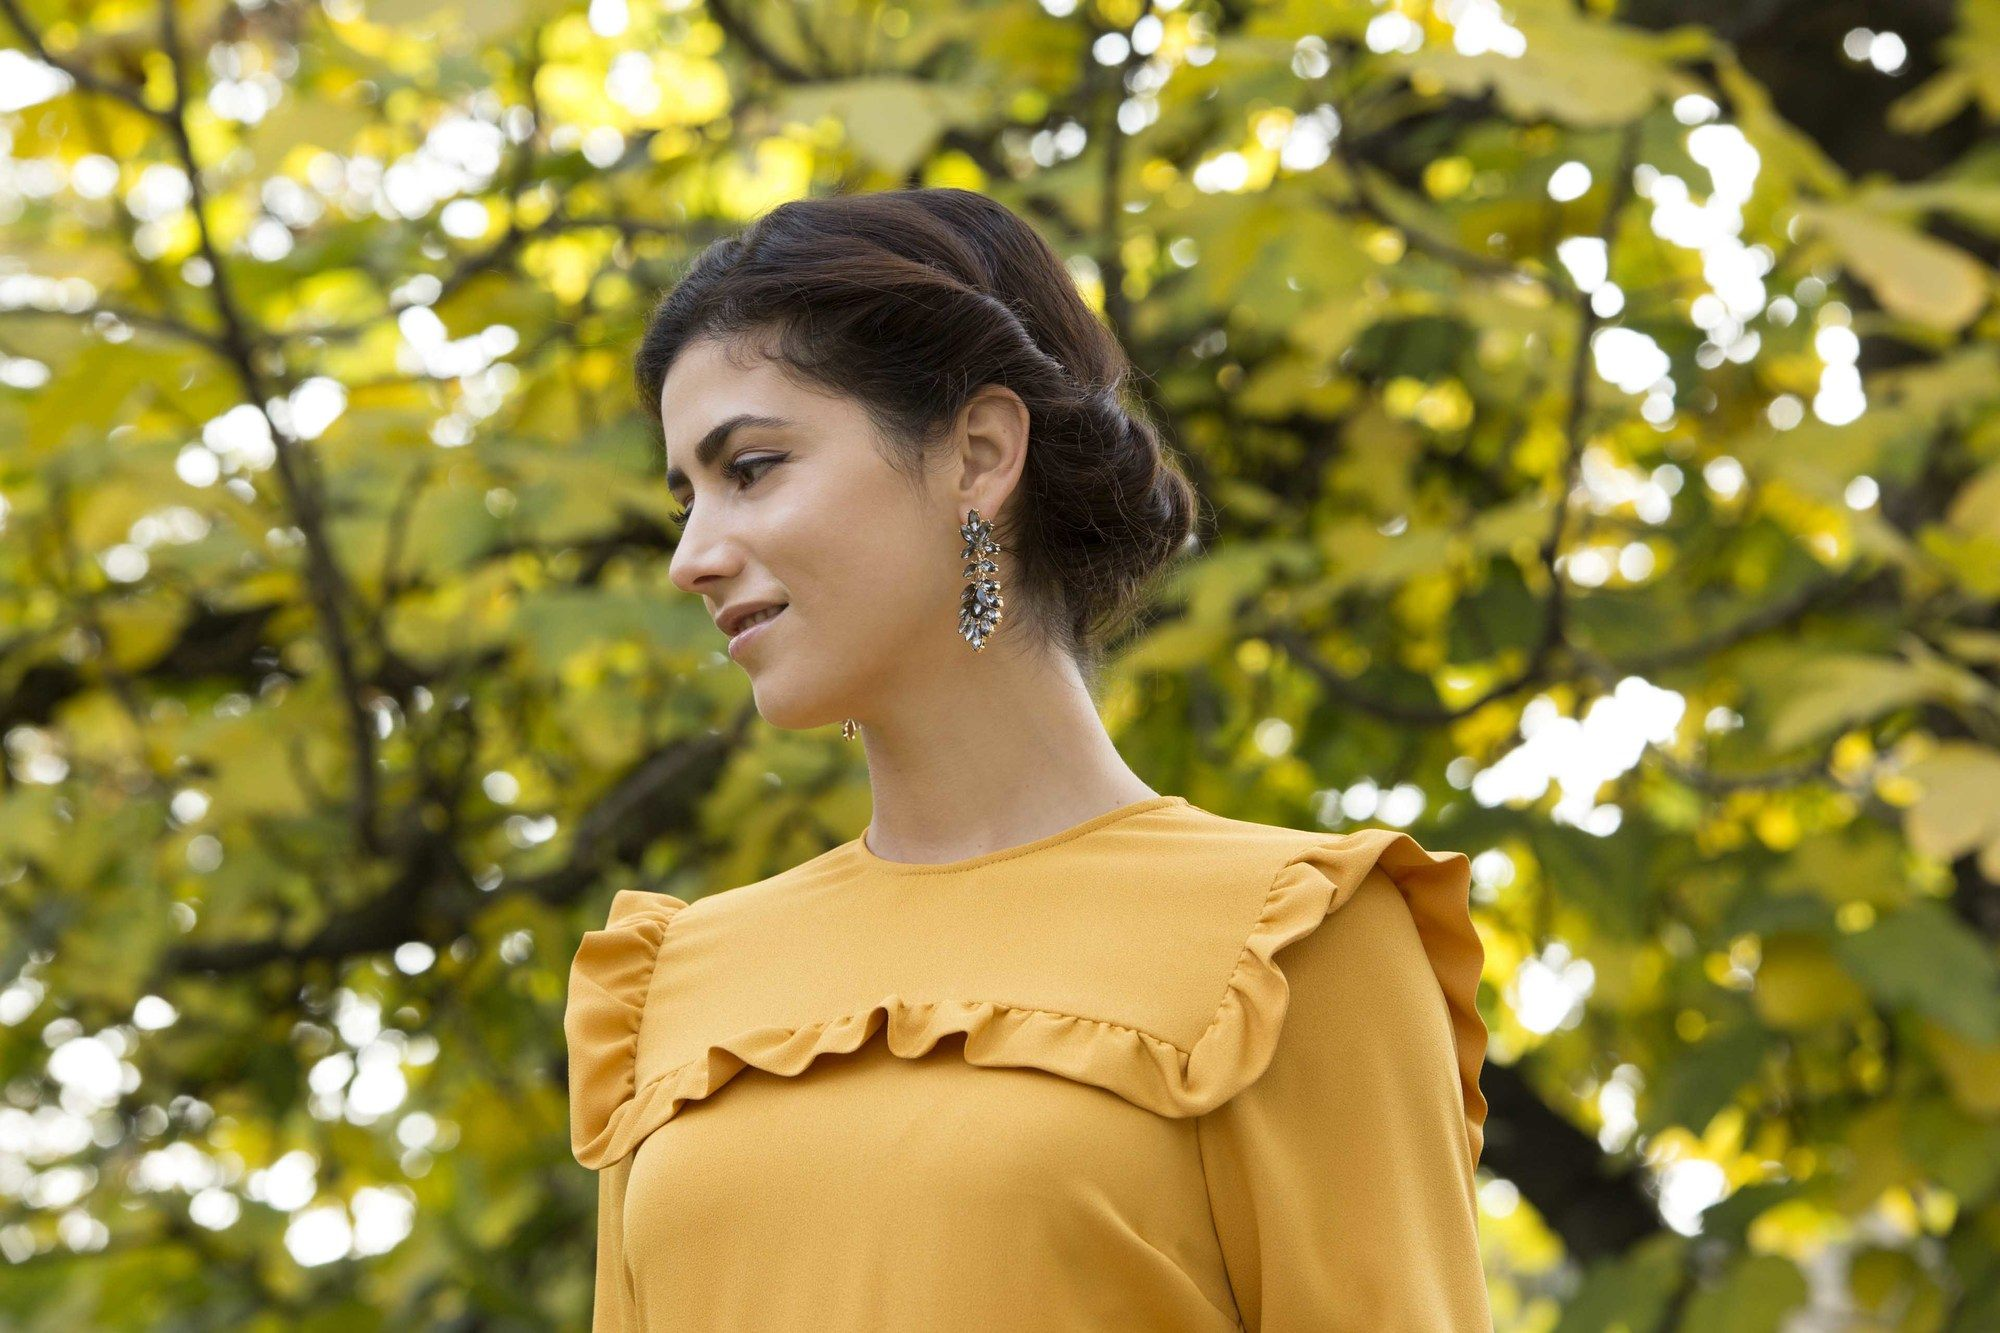 Wedding updos for long hair: Close up shot of a woman with long dark brown hair styled into a Gibson tuck hairstyle, wearing a yellow sundress and posing outside